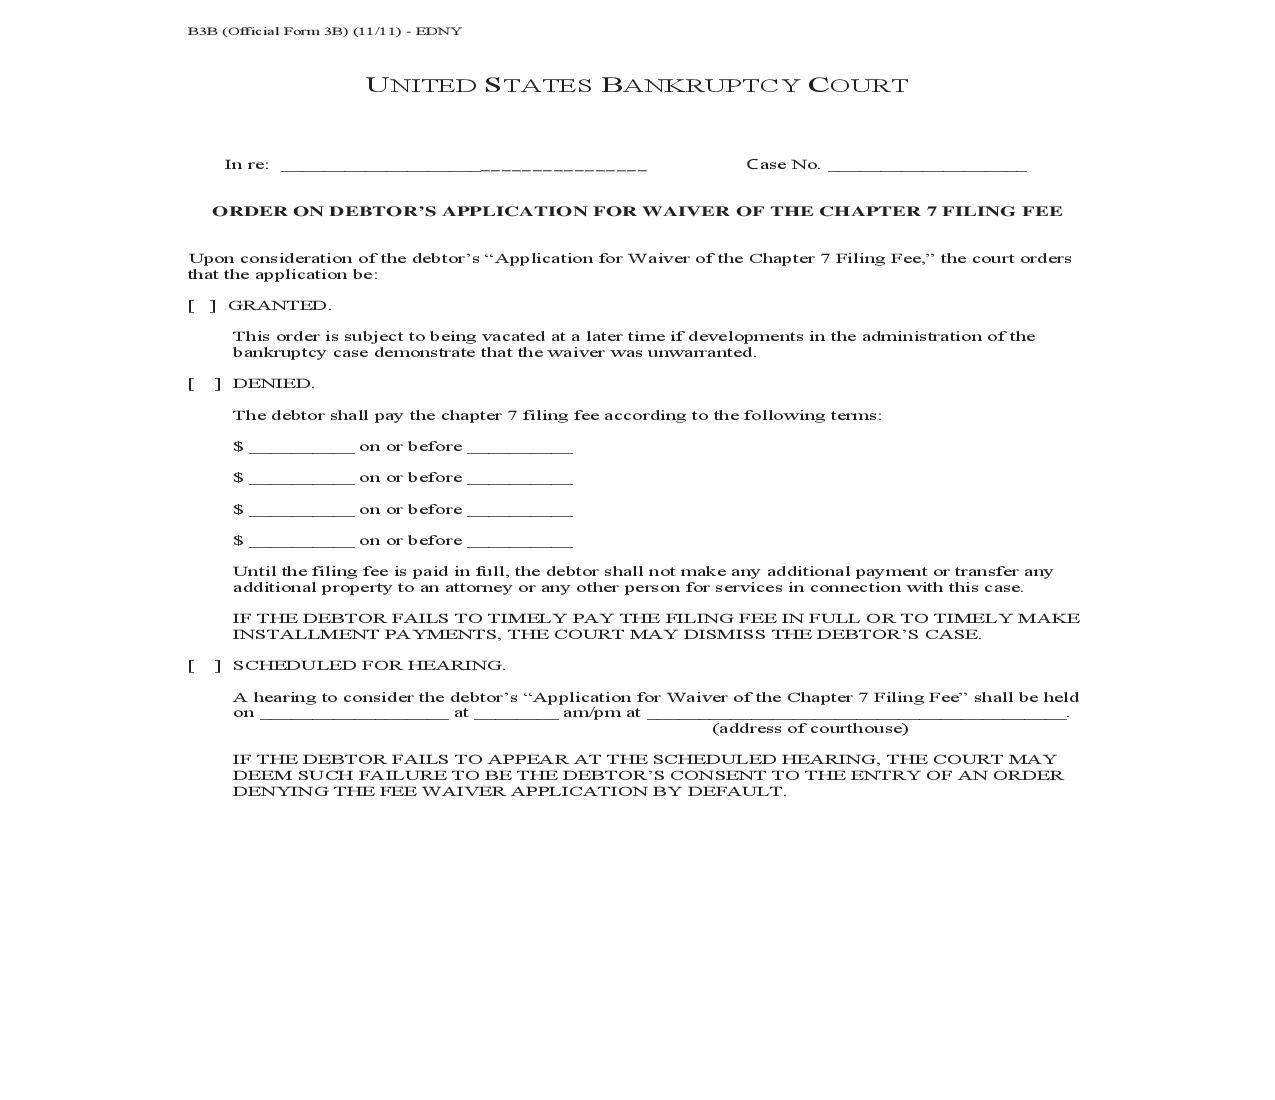 Order On Debtors Application For Waiver Of Chapter 7 Filing Fee (NYEB) | Pdf Fpdf Doc Docx | New York